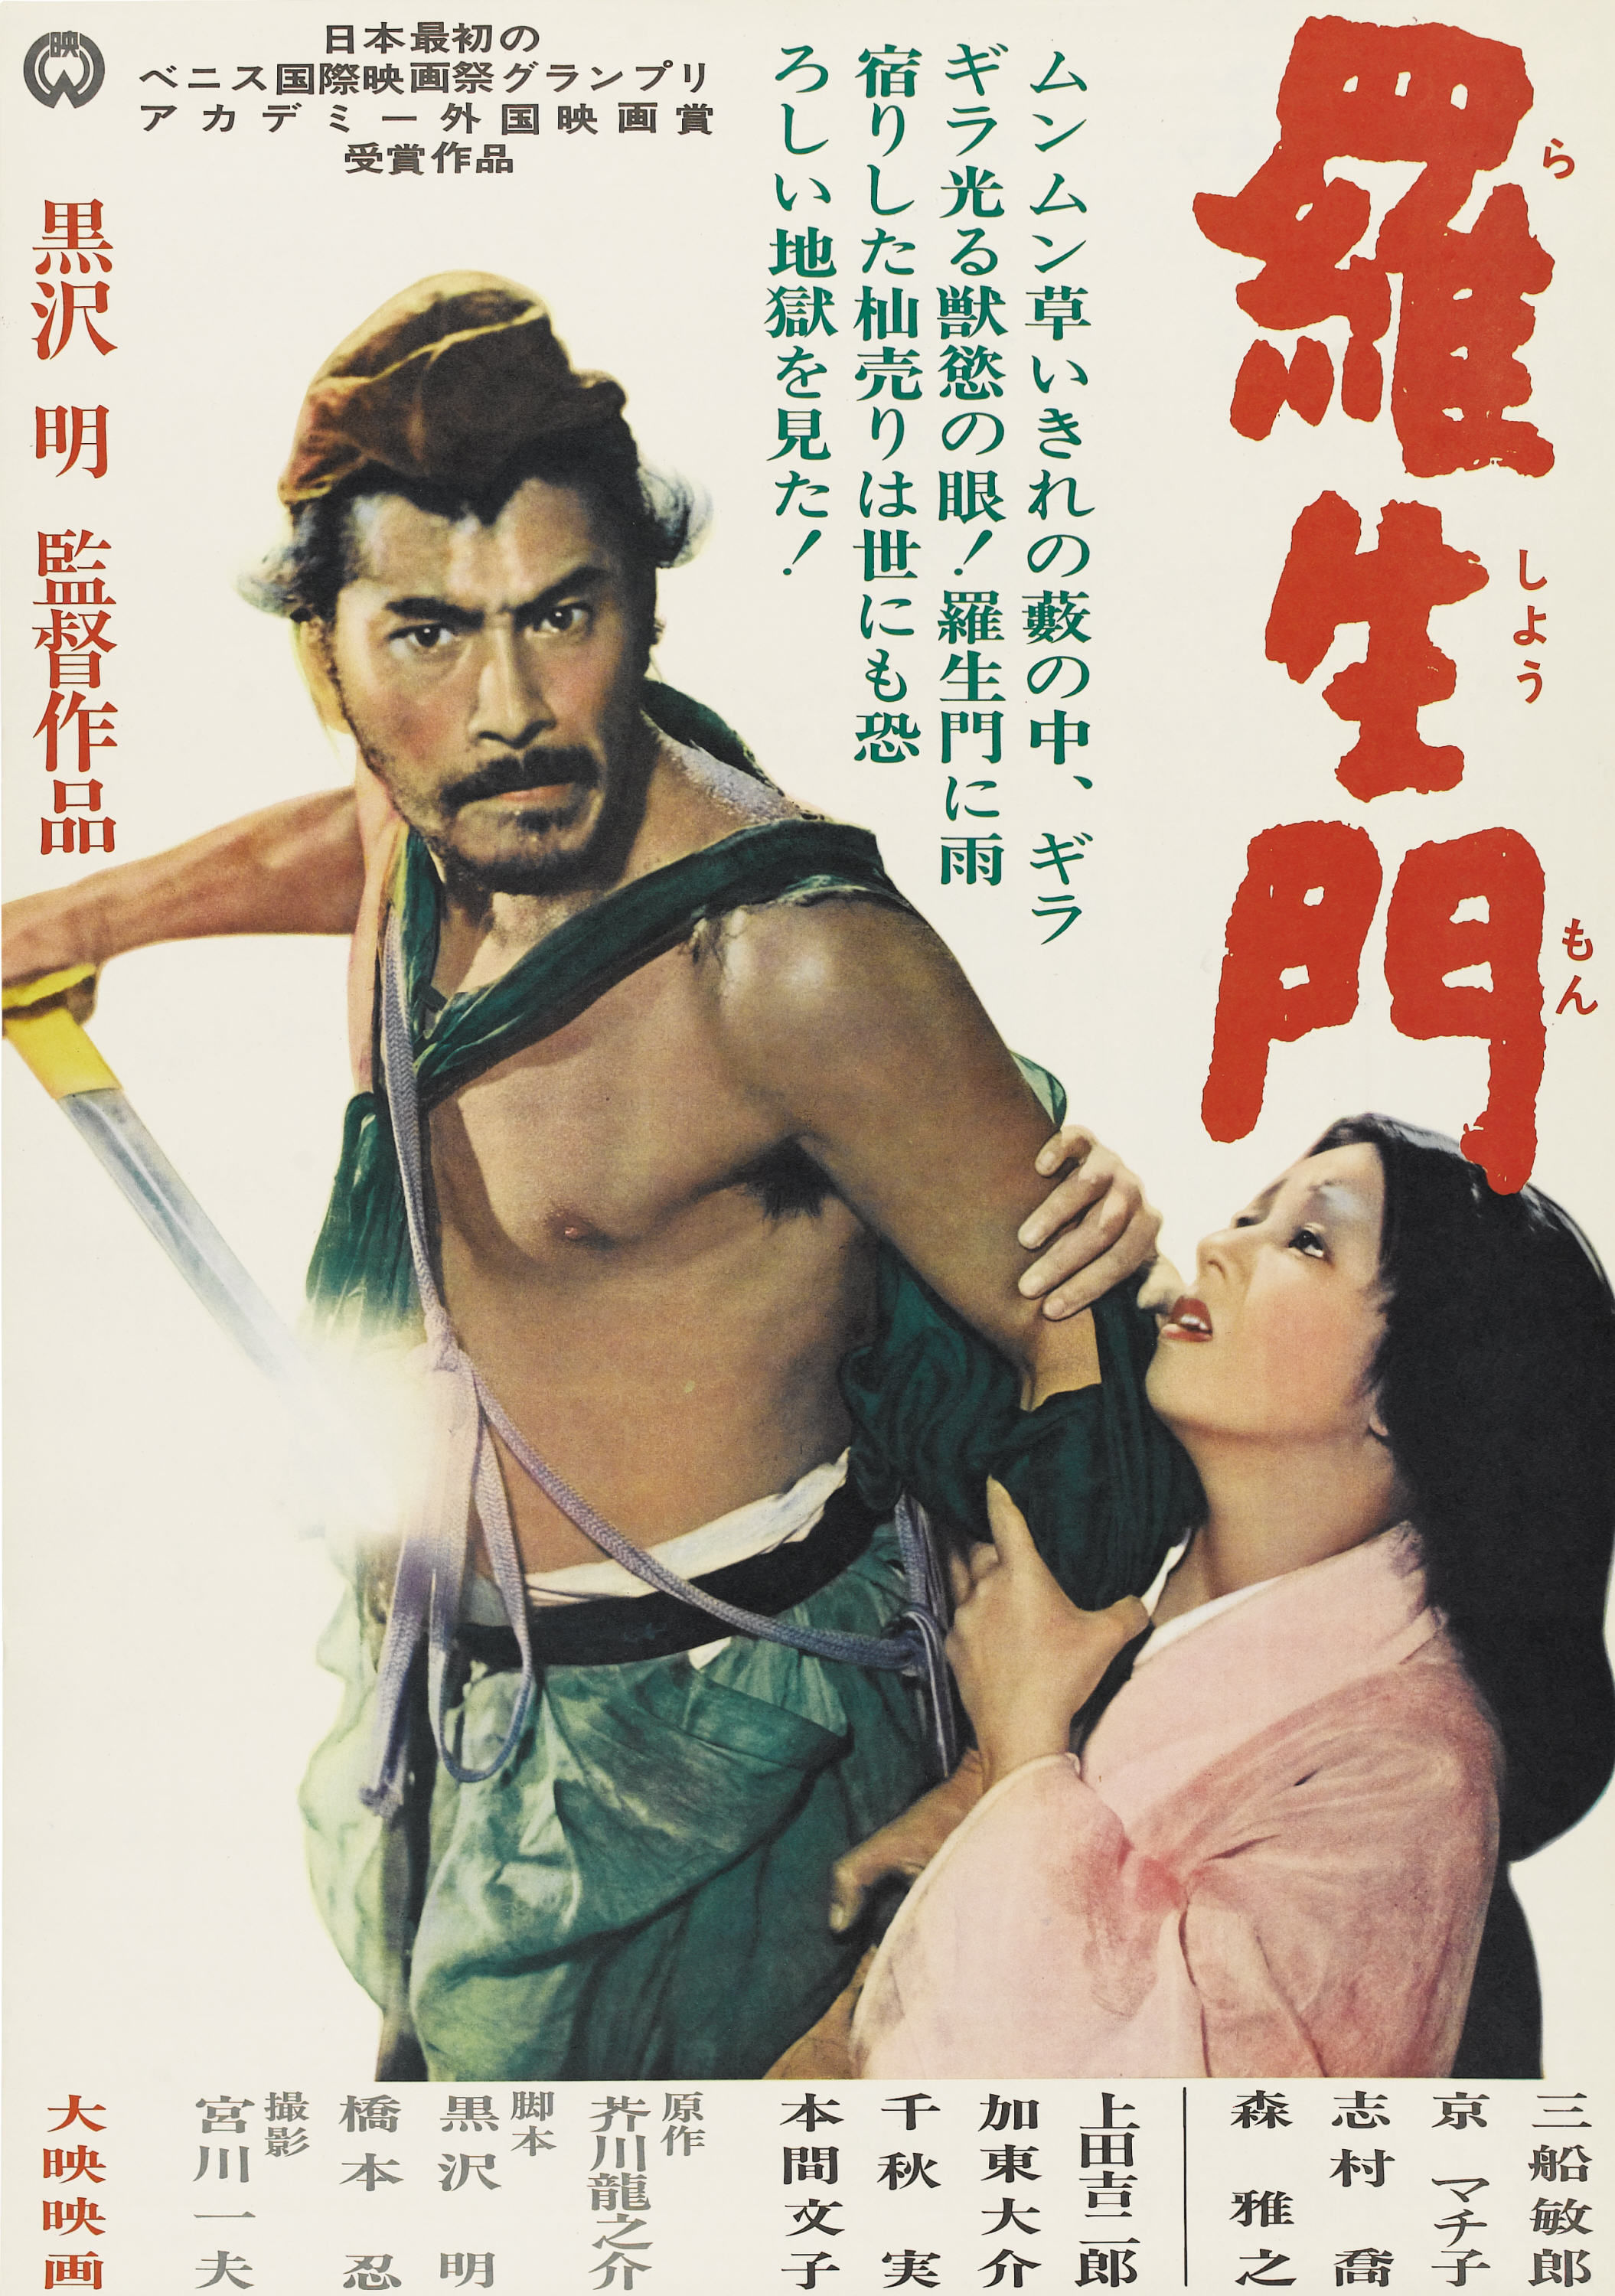 the samurai films of akira kurosawa Ben walters: akira kurosawa, the legendary japanese director, was born 100 years ago today he's already the subject of a google doodle, now here's a guide to ten key kurosawa movies, from classics such as seven samurai and throne of blood to late greats ran and dreams.